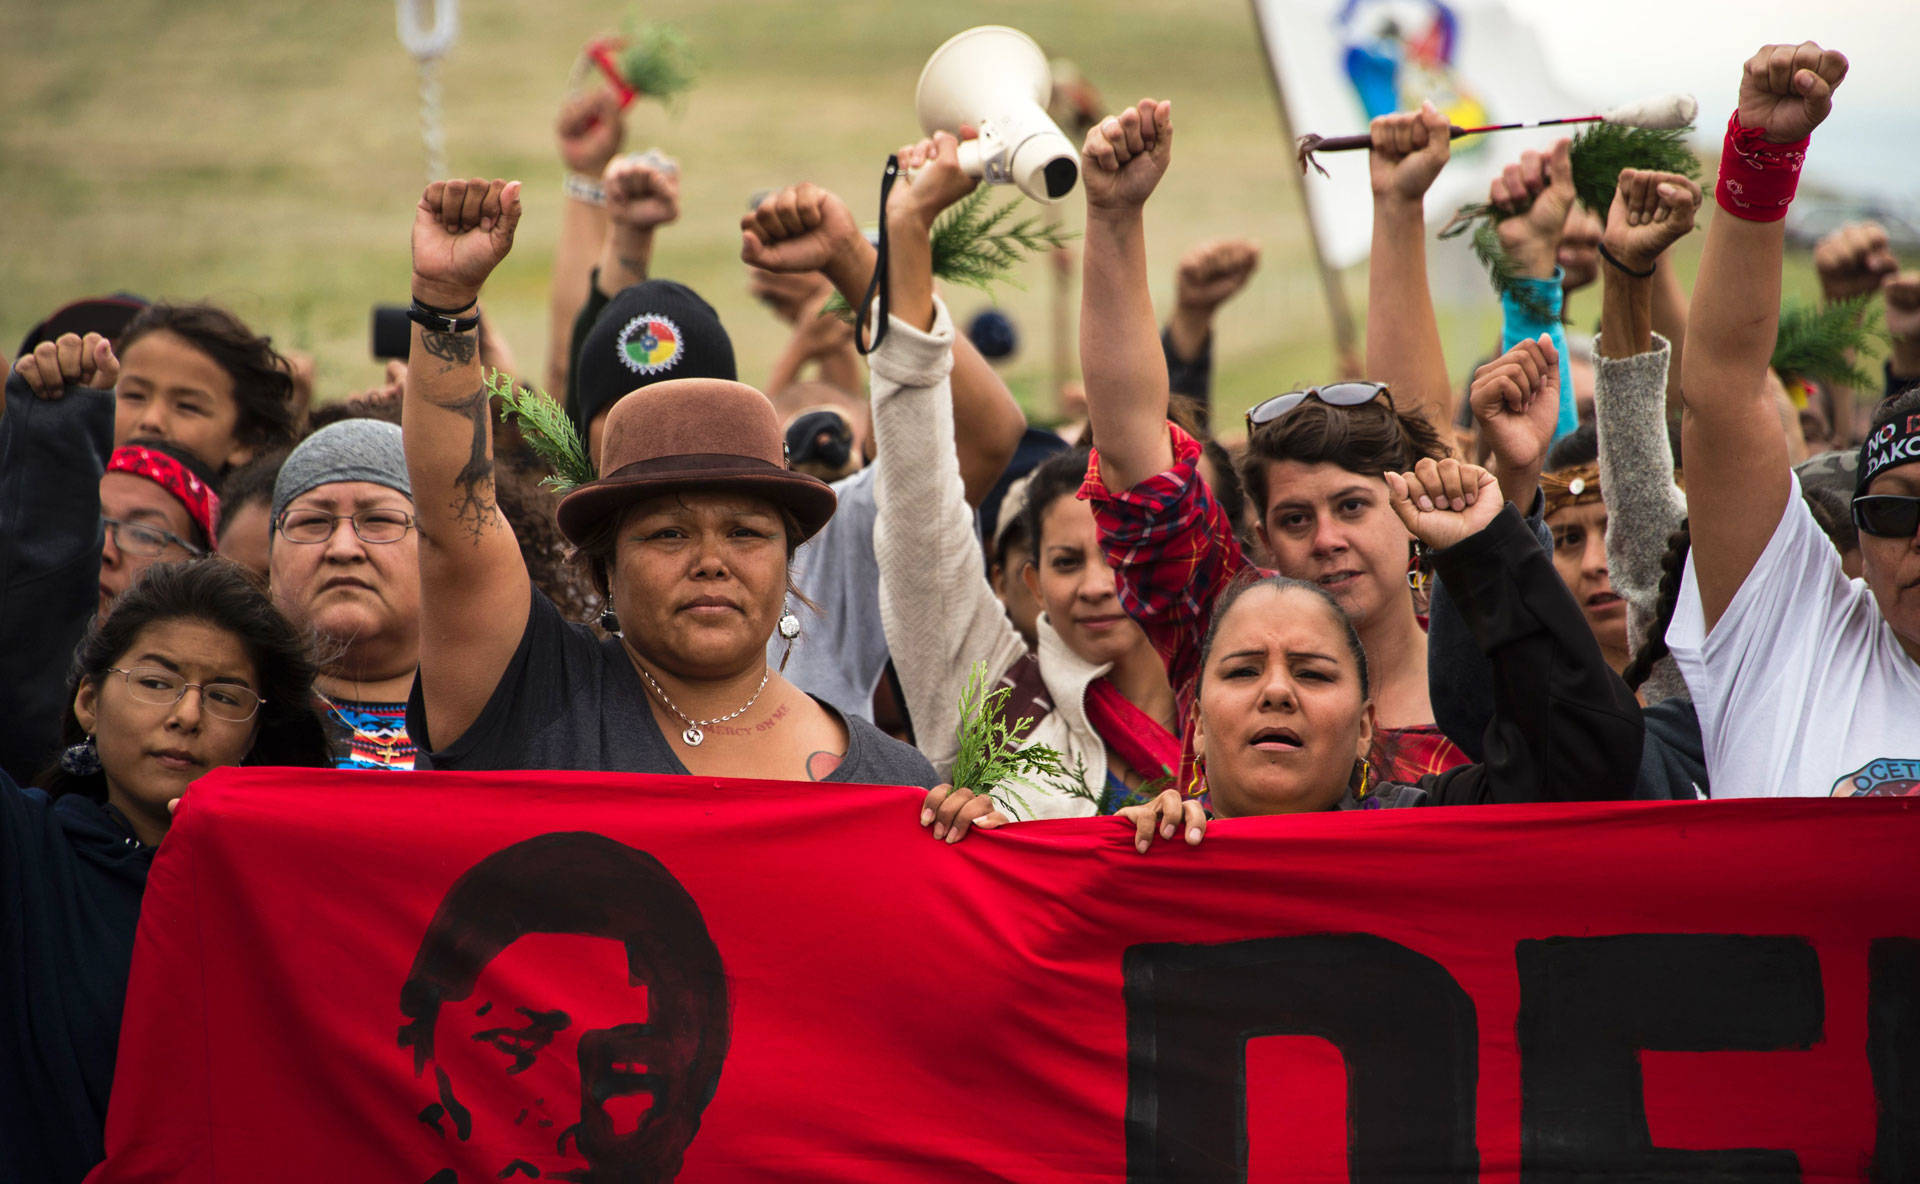 Native Americans march to a sacred burial ground site that was disturbed by bulldozers building the Dakota Access Pipeline, near the encampment where hundreds of people gathered to join the Standing Rock Sioux Tribe's protest of the oil pipeline that was slated to cross the Missouri River on Sept. 4, 2016. Robyn Beck/AFP/Getty Images